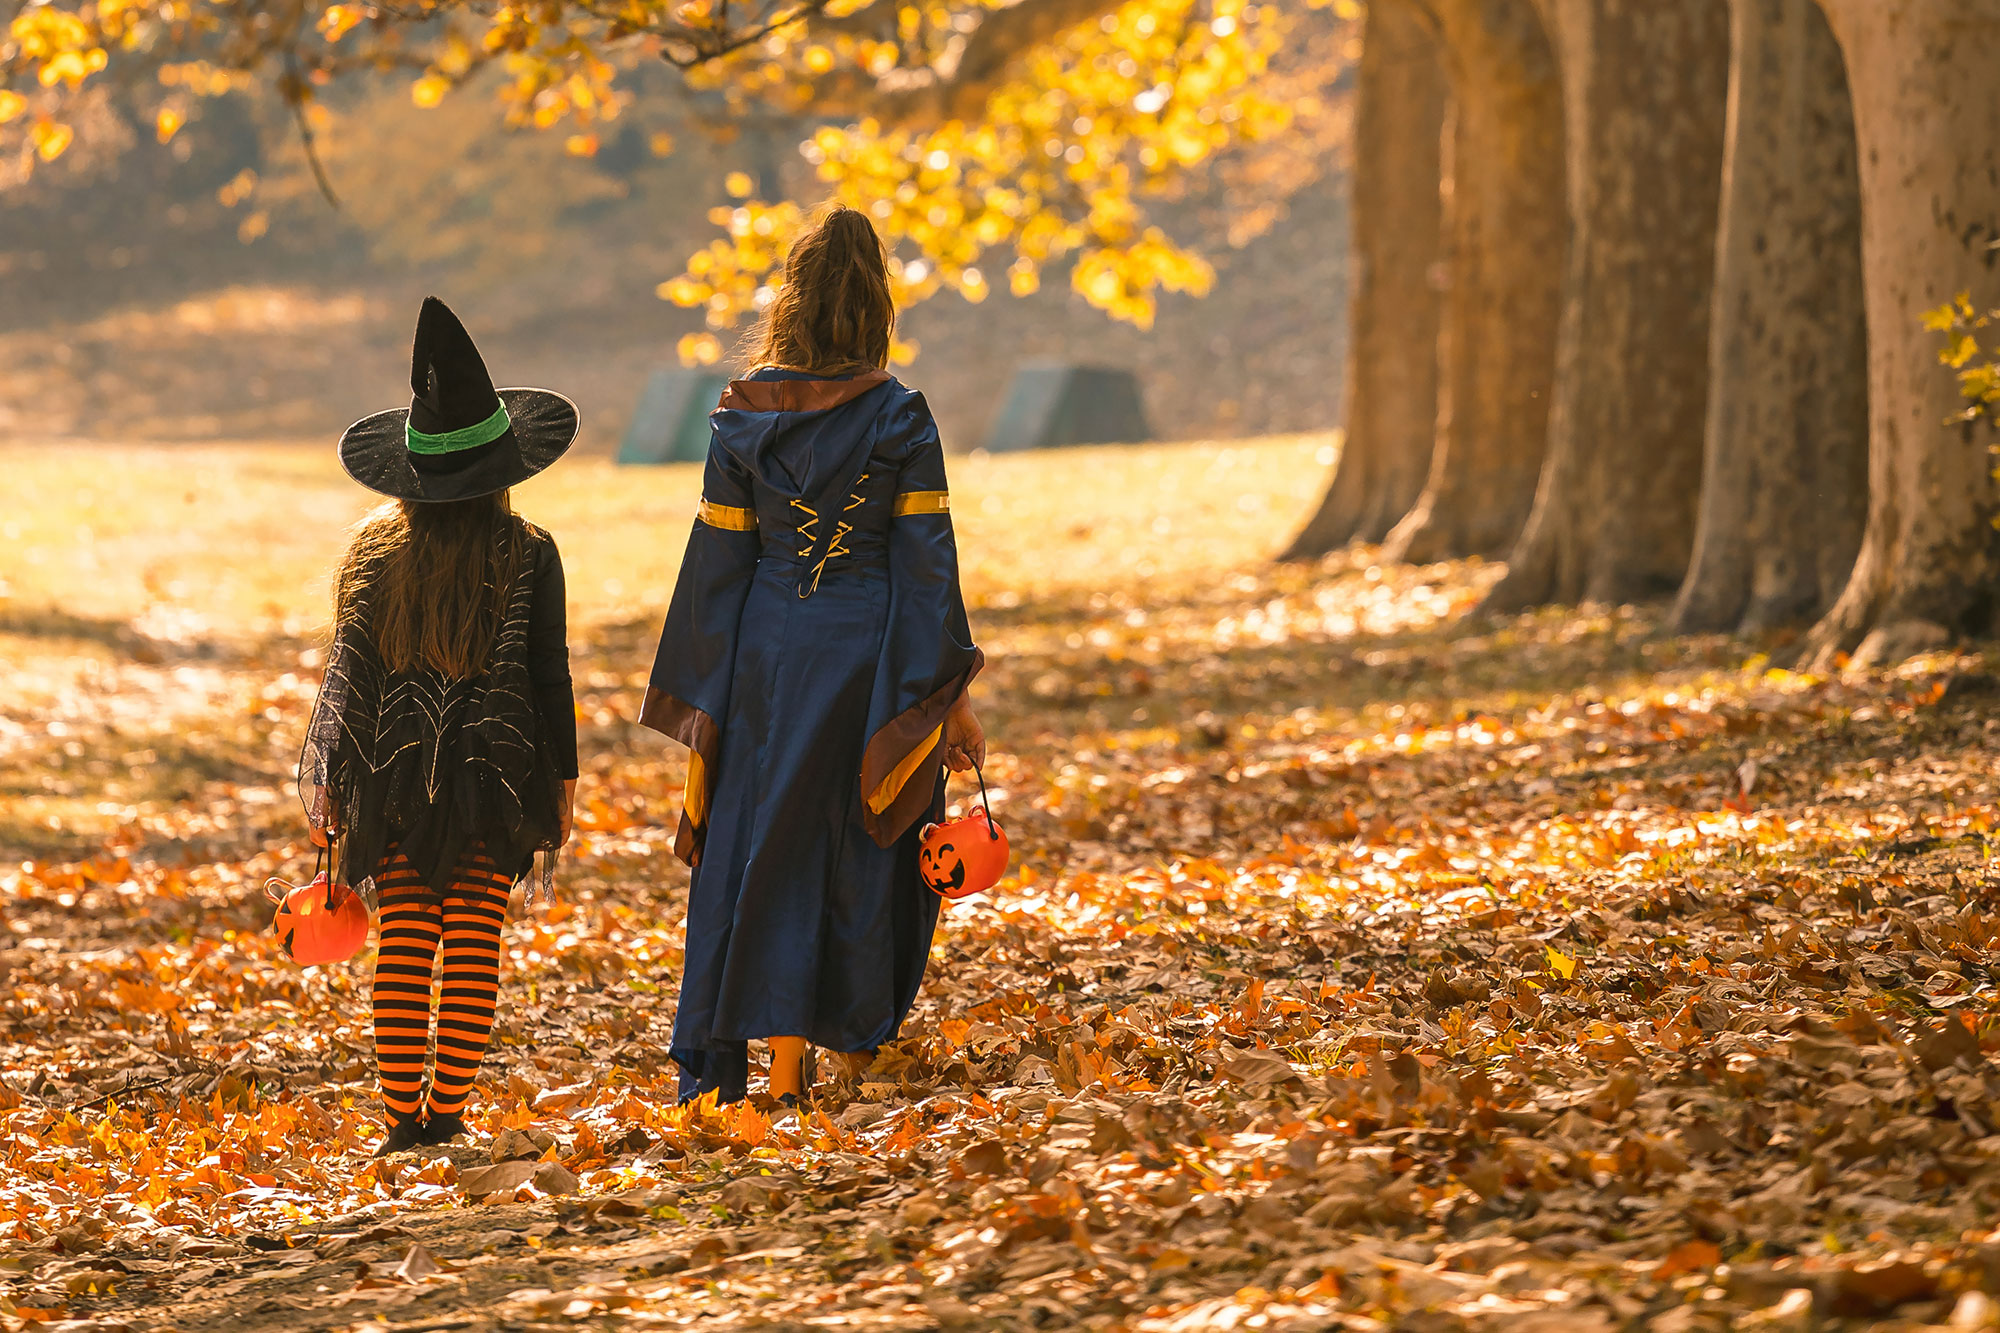 Two young girls in Halloween costumes walking through autumn woods to go trick or treating